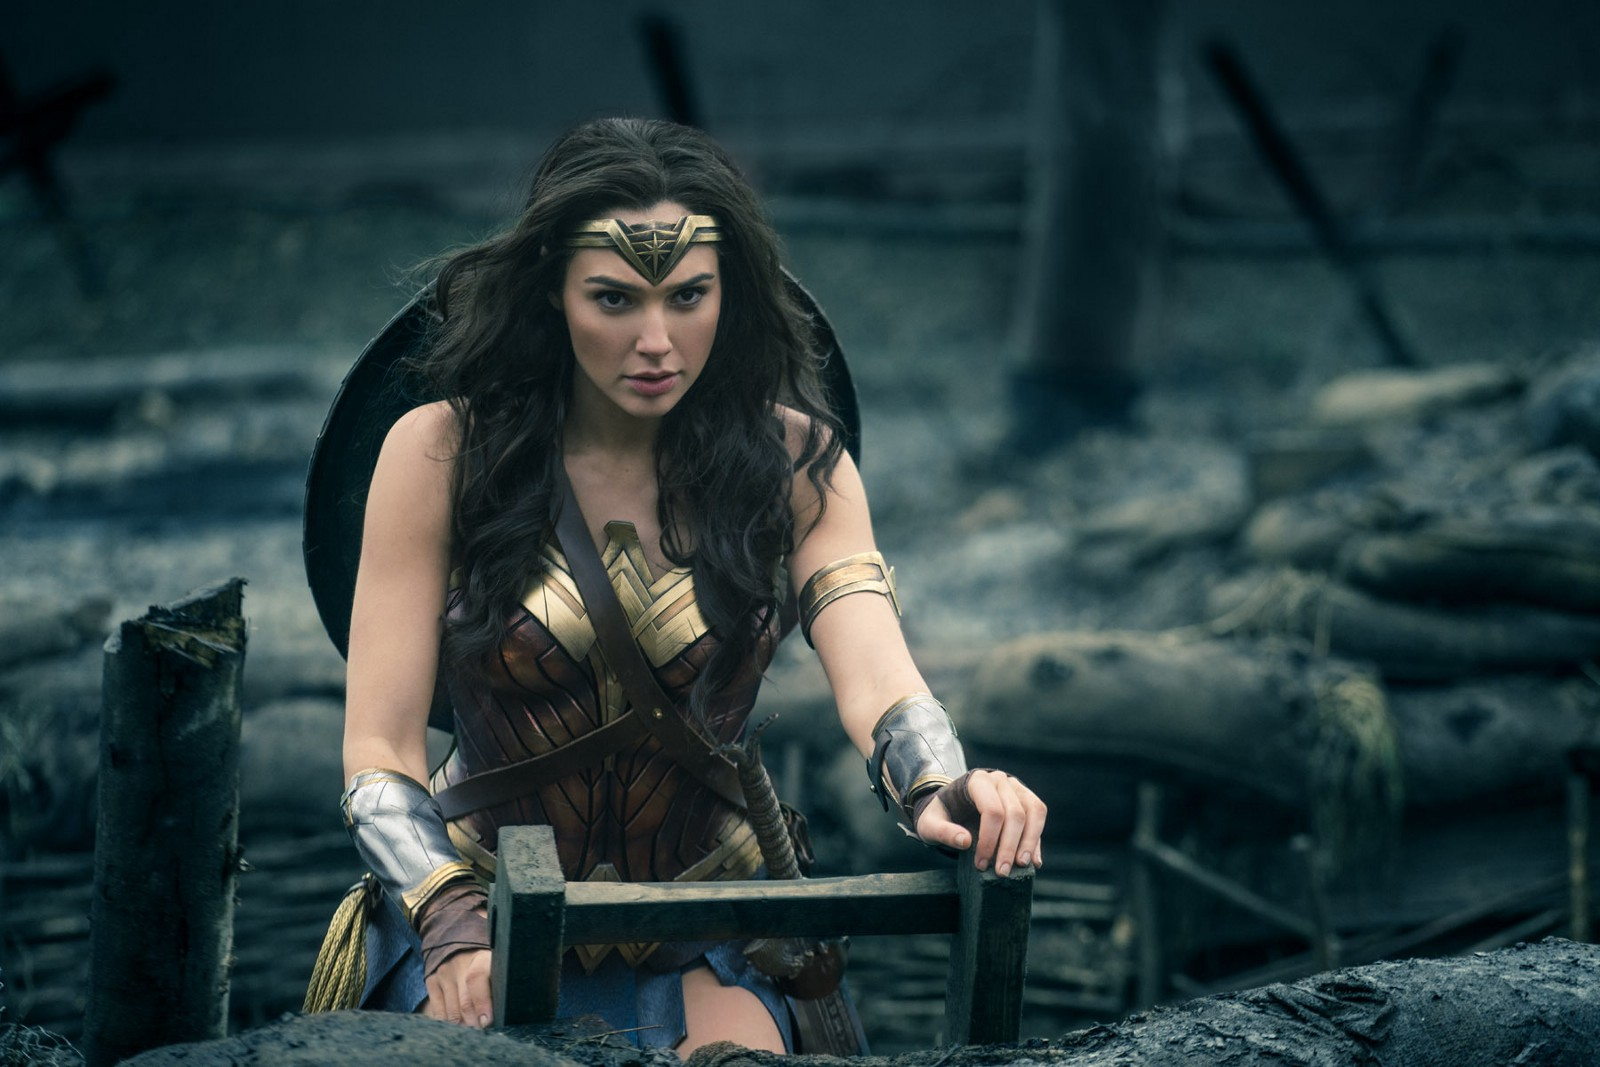 Movie review with the highly enjoyable wonder woman strong women movie review with the highly enjoyable wonder woman strong women have come to rescue the flailing empire of dc films malvernweather Choice Image